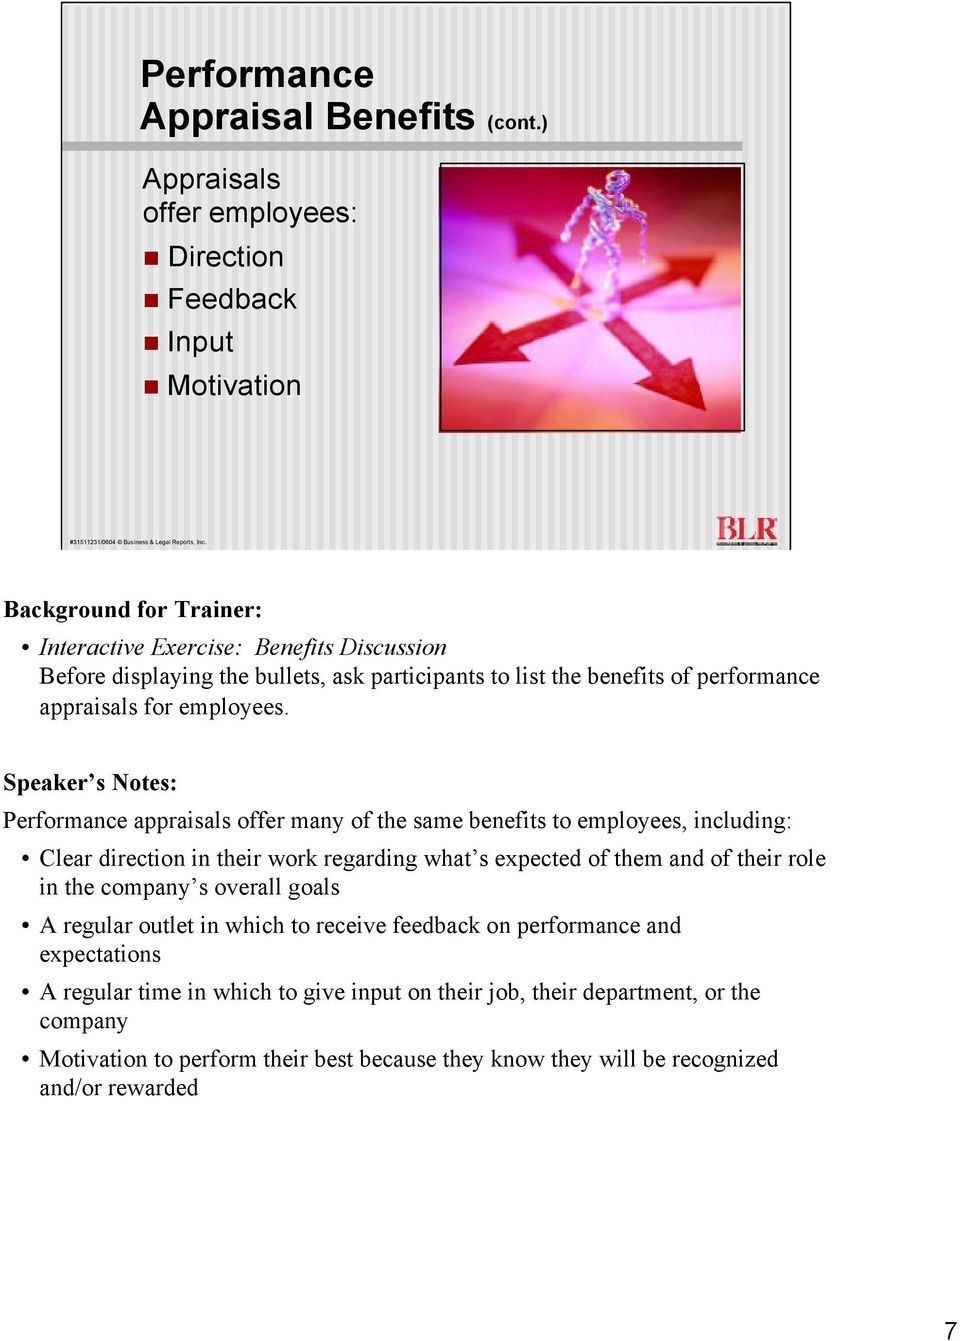 benefits of performance appraisals for employees.